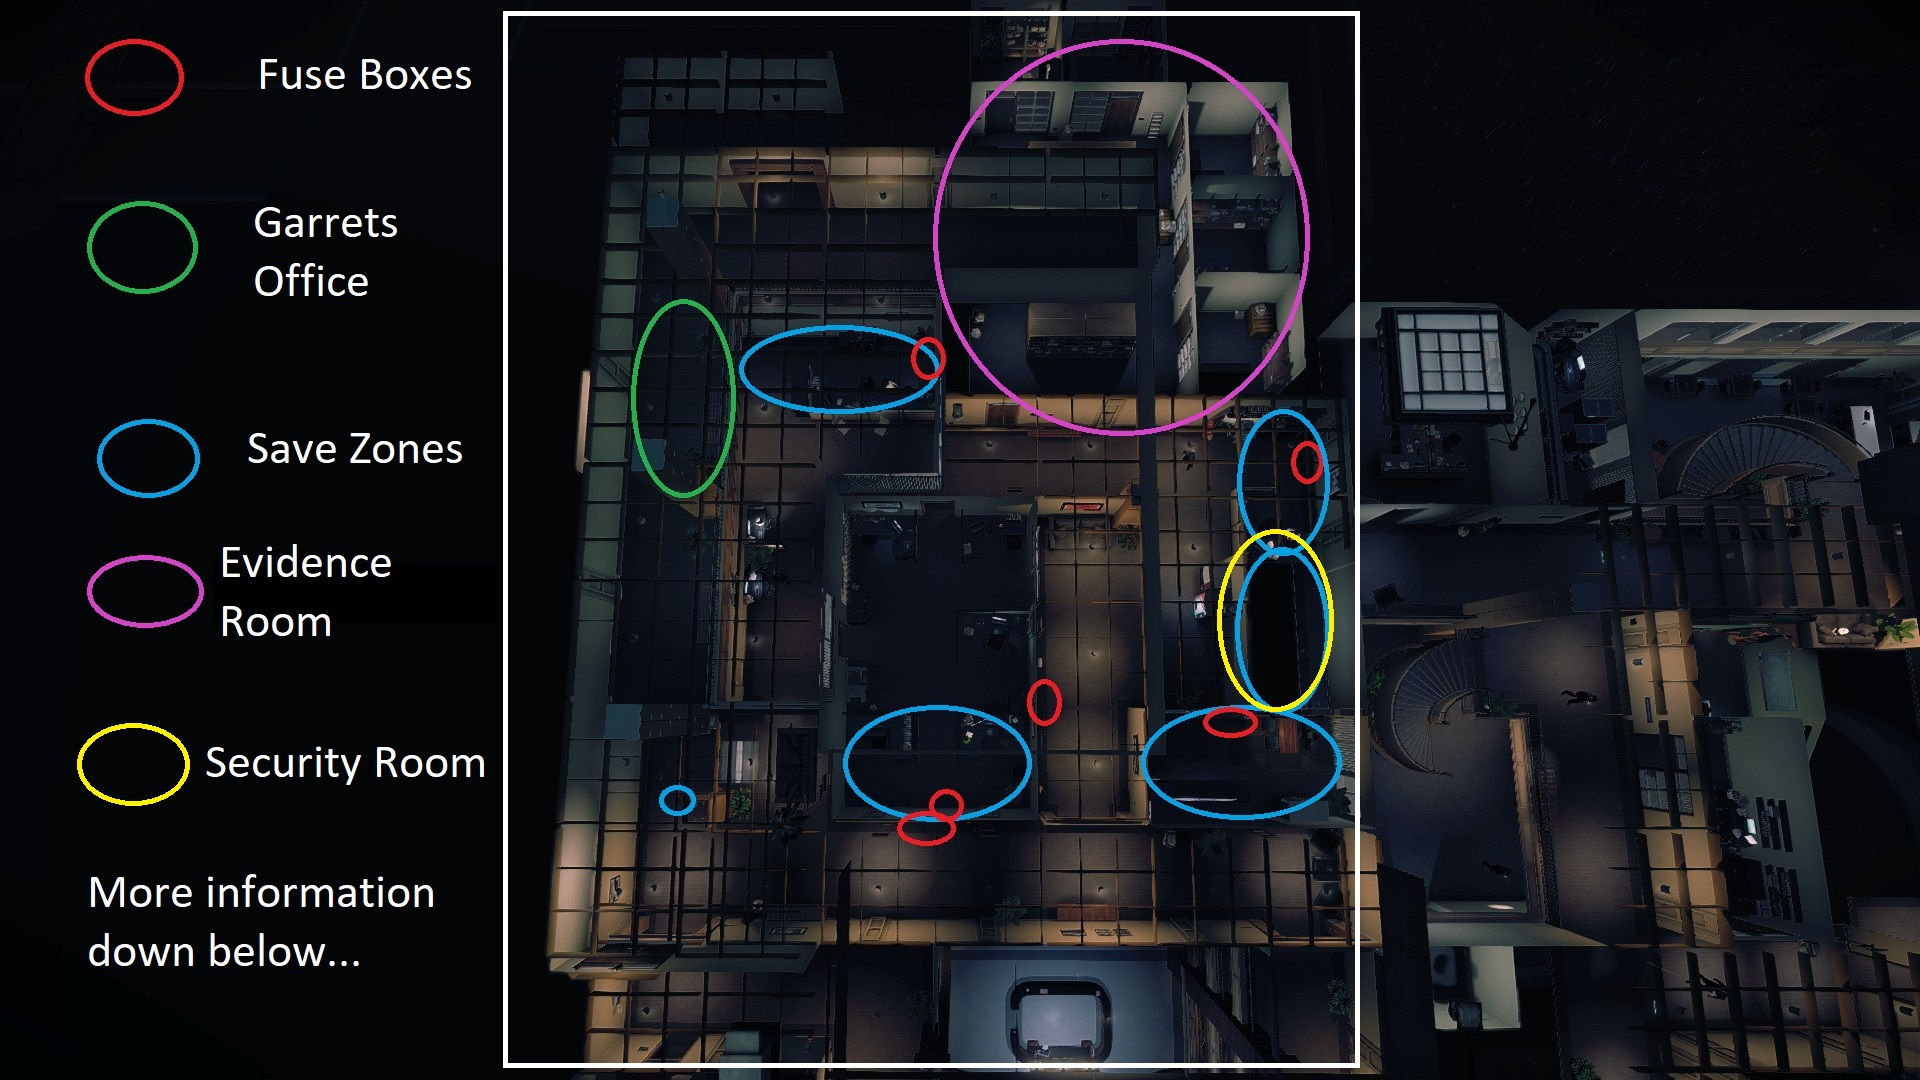 Steam Community Guide Breakin Feds In Depth Safe Fuse Box The Evidence Room Will Be On Opposite Side Of Map From What Garret Is I Think Also Classes As A Zone